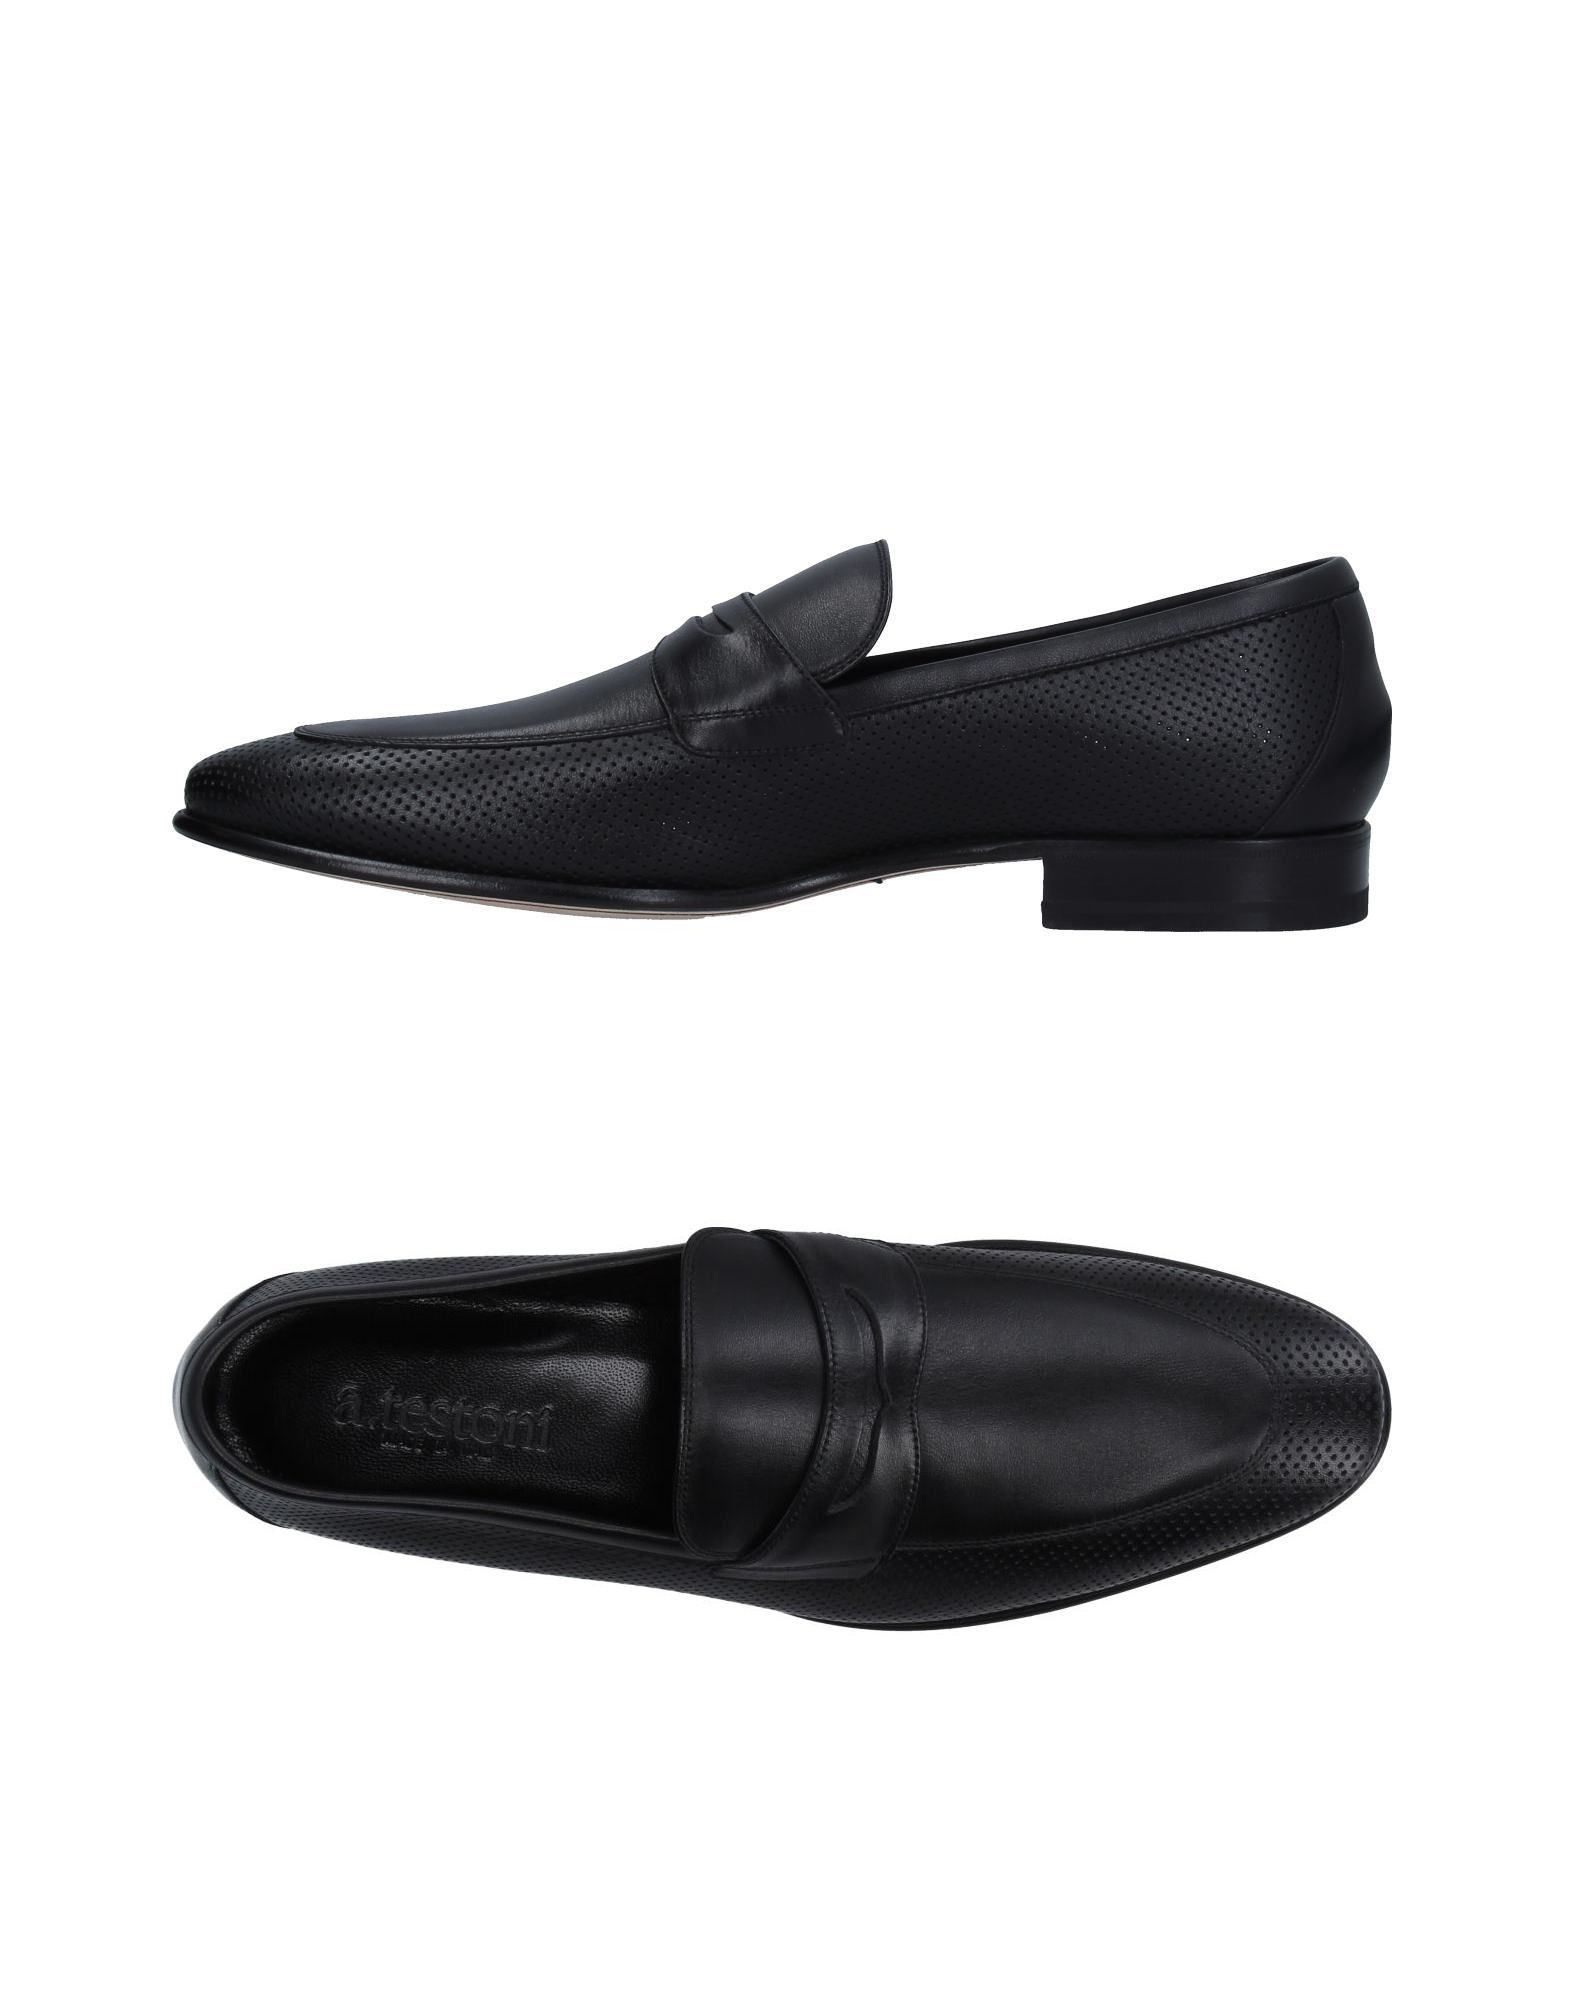 Loafers for Men On Sale, Black, Leather, 2017, 6.5 6.75 7 8 8.5 9 9.5 Seboy